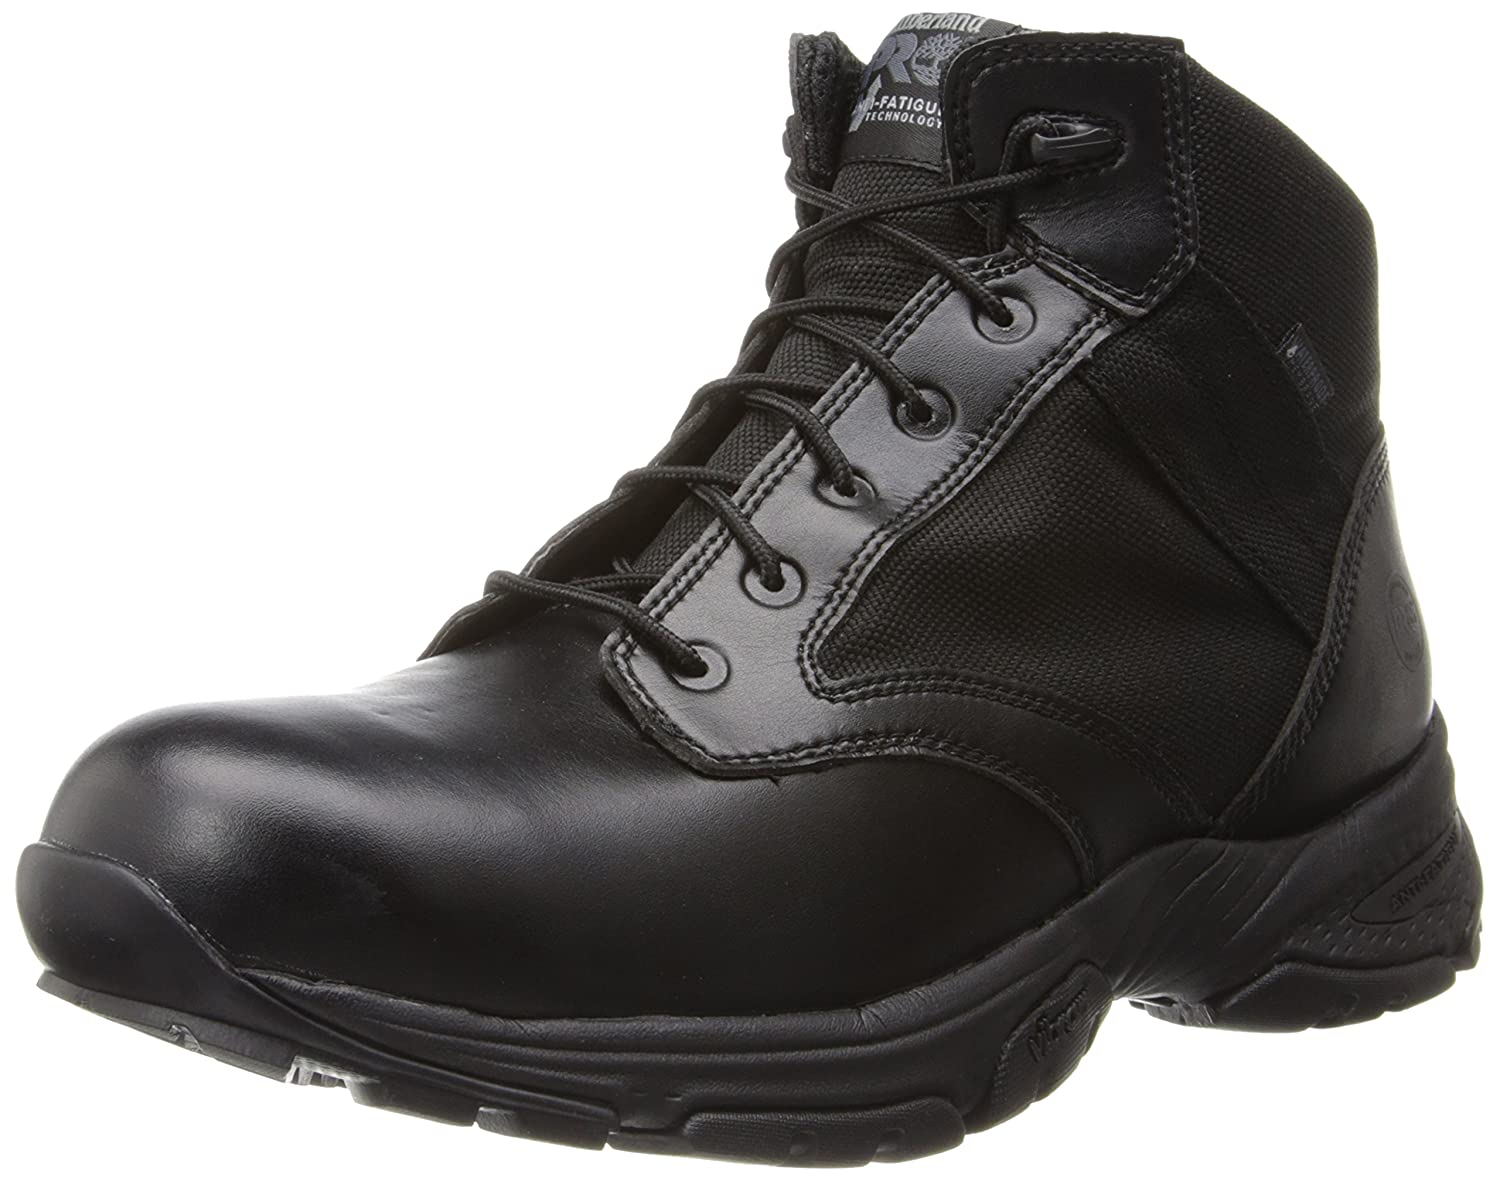 Timberland PRO Men's 5 inch Valor Soft Toe Waterproof Duty Boot,Black Smooth with Textile,10 W US